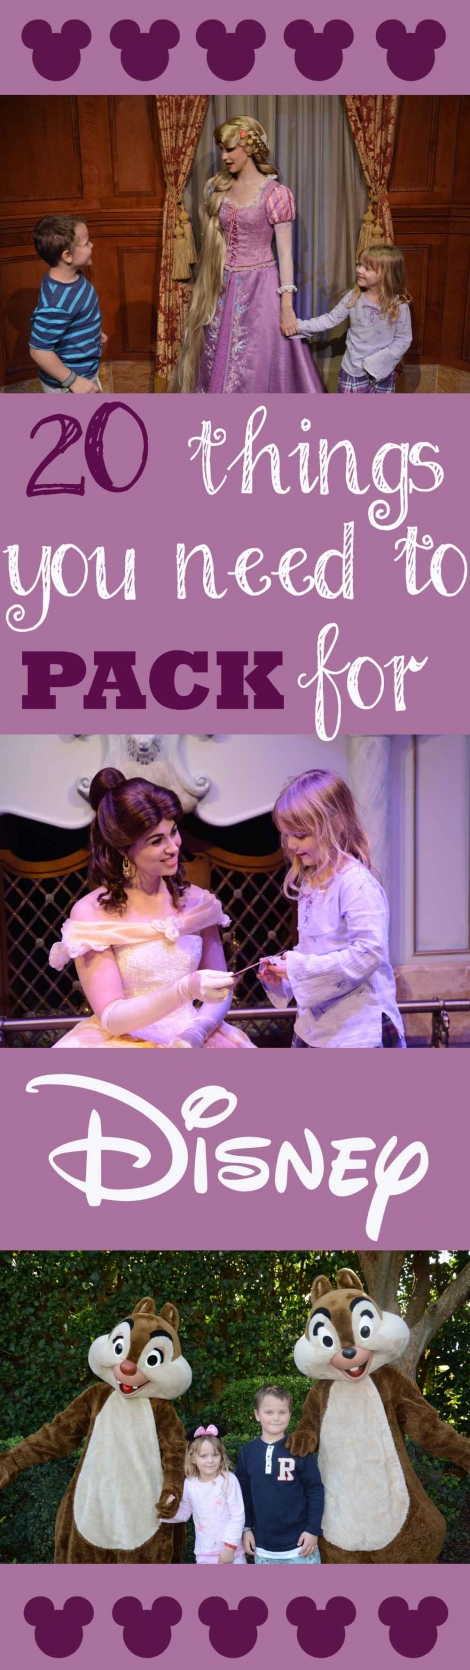 20-Packing-Tips-for-your-trip-to-Disney-purple